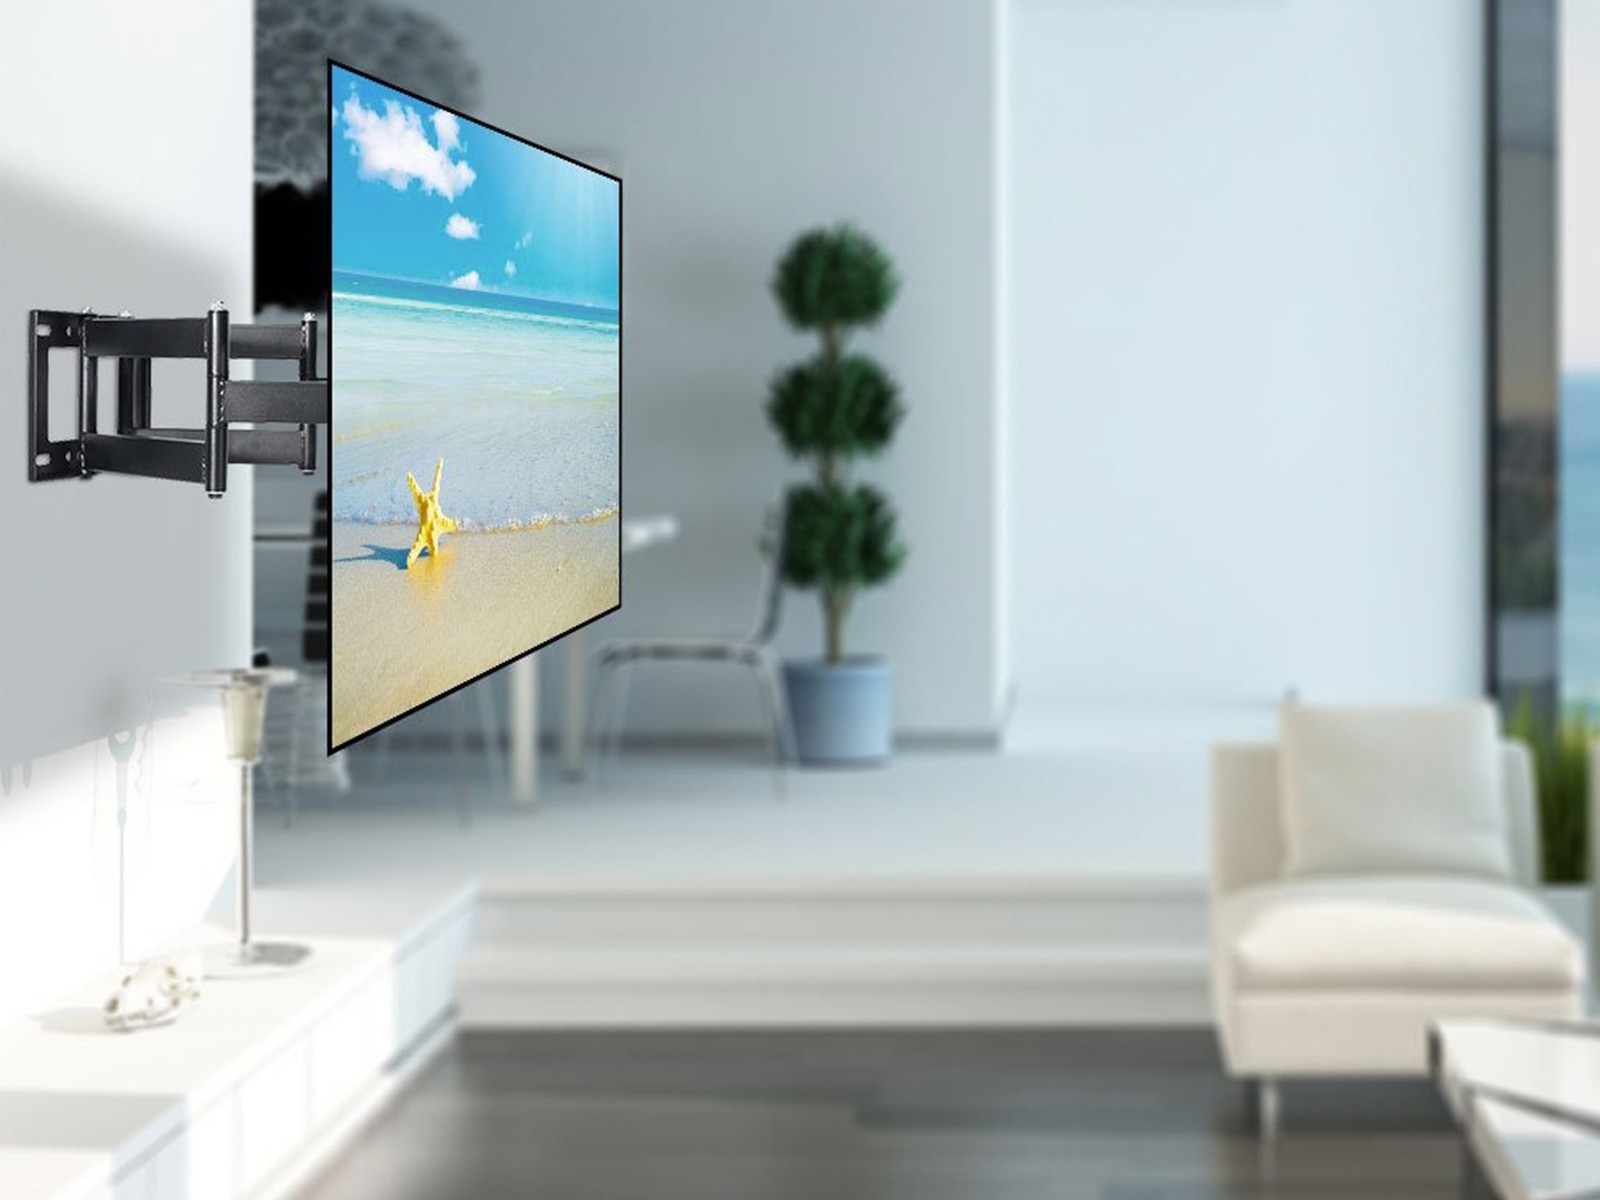 The $24 Lumsing TV wall mount lets you watch your favorite shows ...